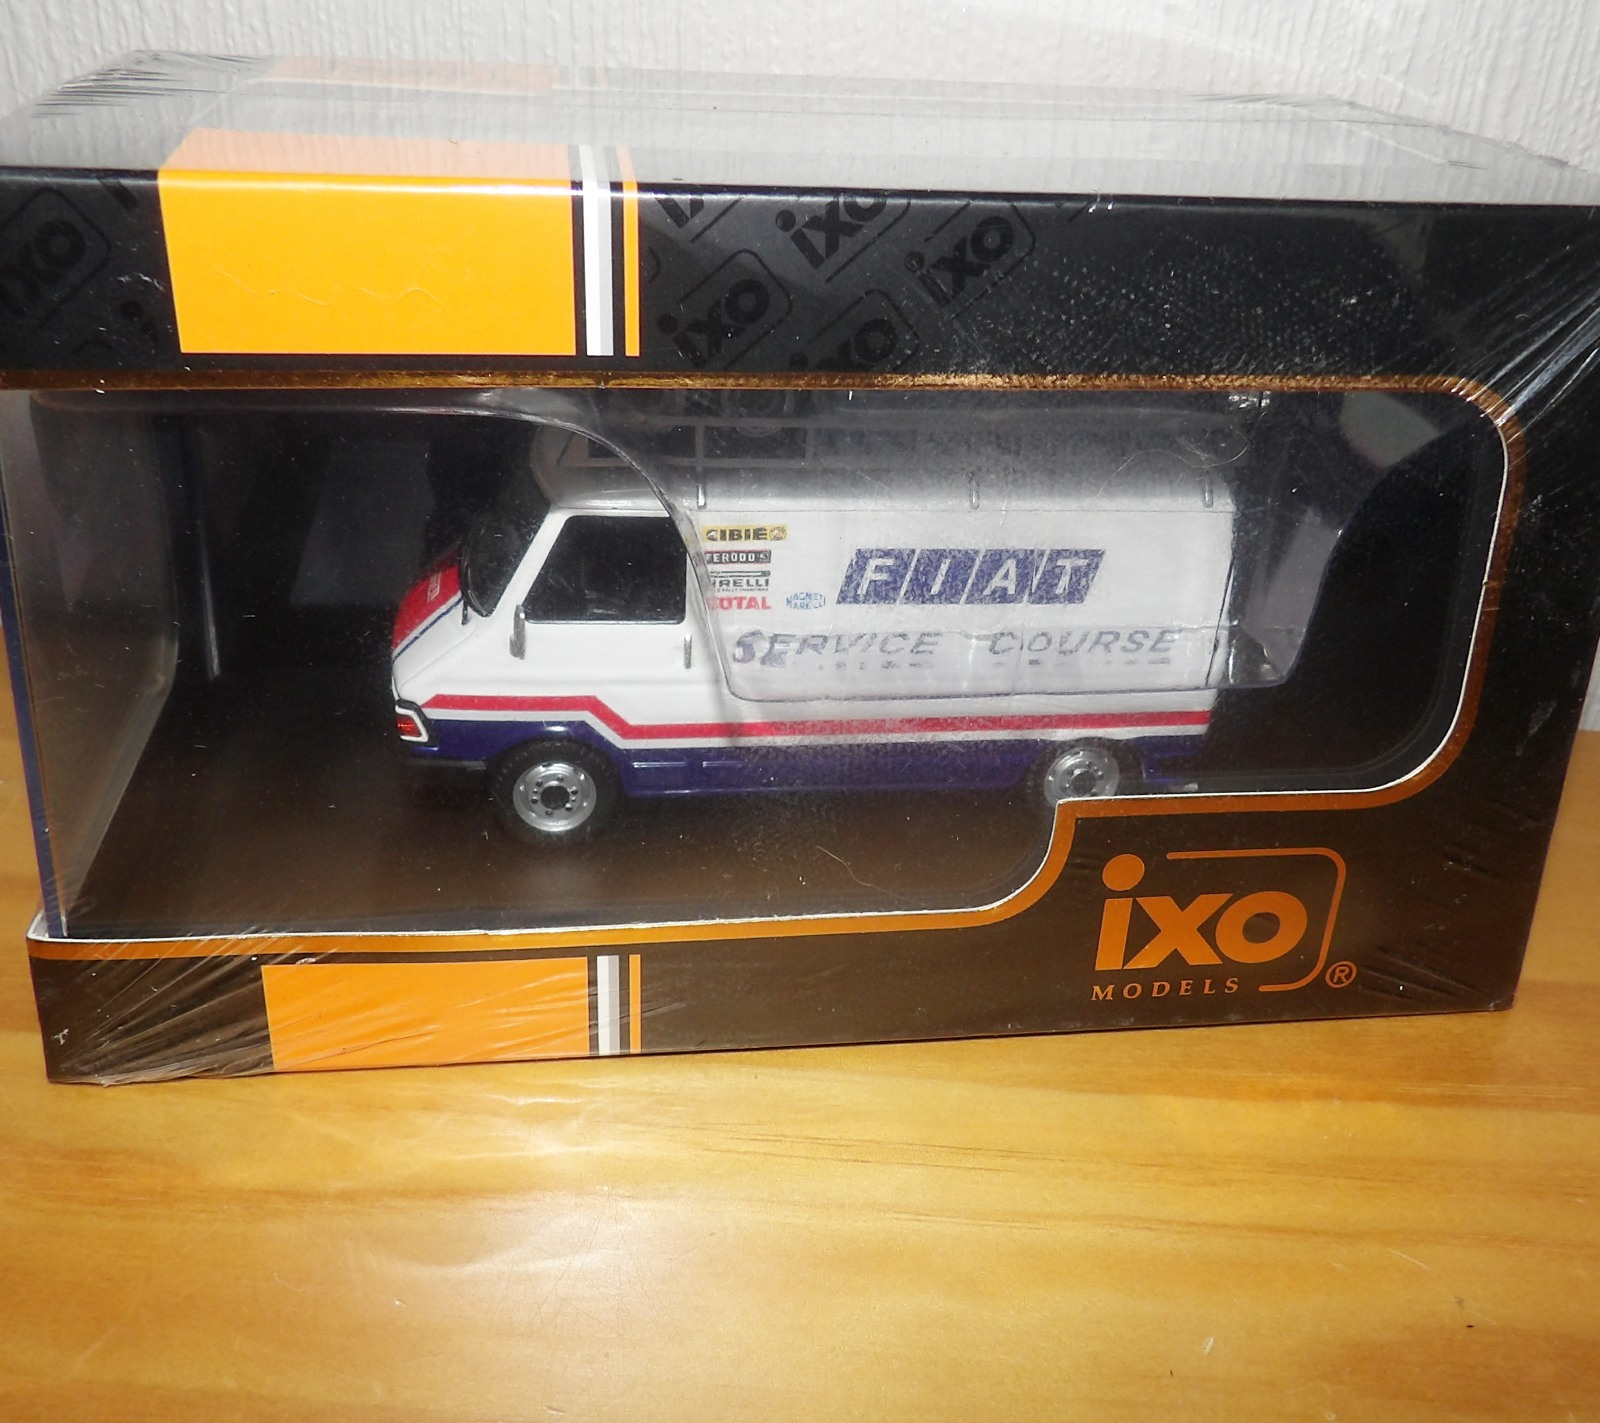 Lot 715 - 1.43 Scale IXO Fiat 247 Fiat France Service Course Van 1979. P&P Group 1 (£14+VAT for the first